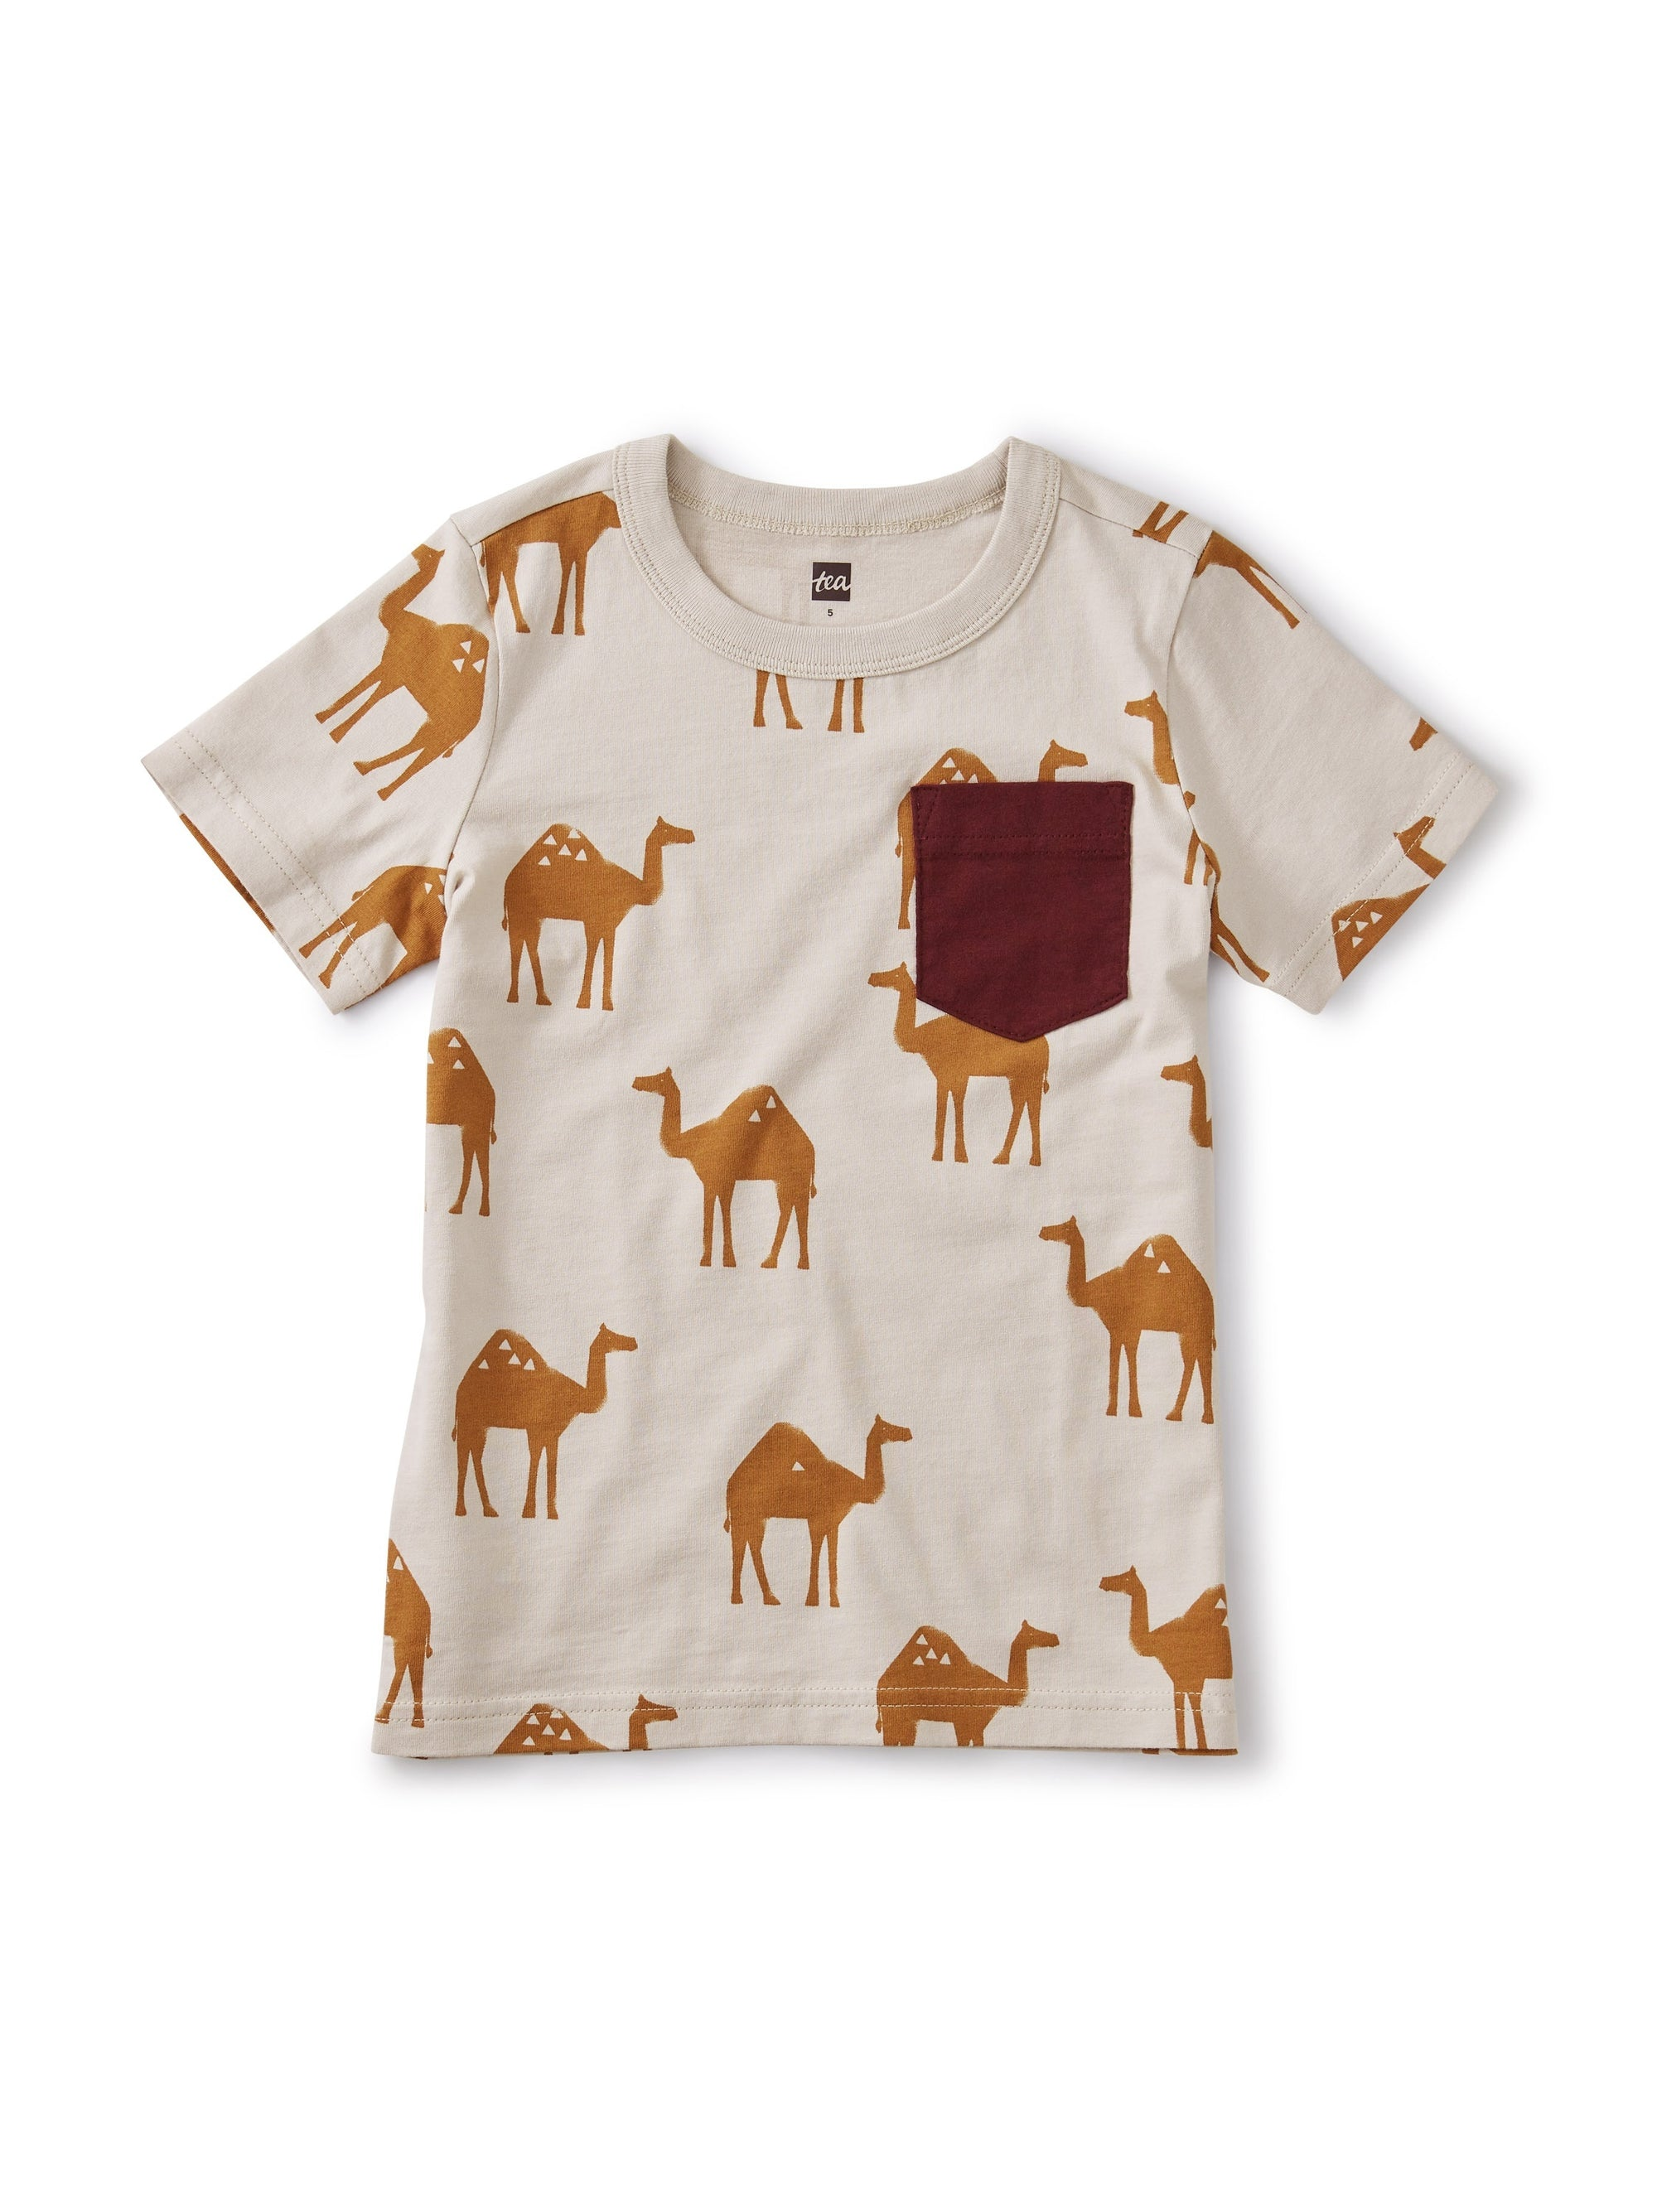 Tea Collection Printed Pocket Tee - Oasis Camels/Ash